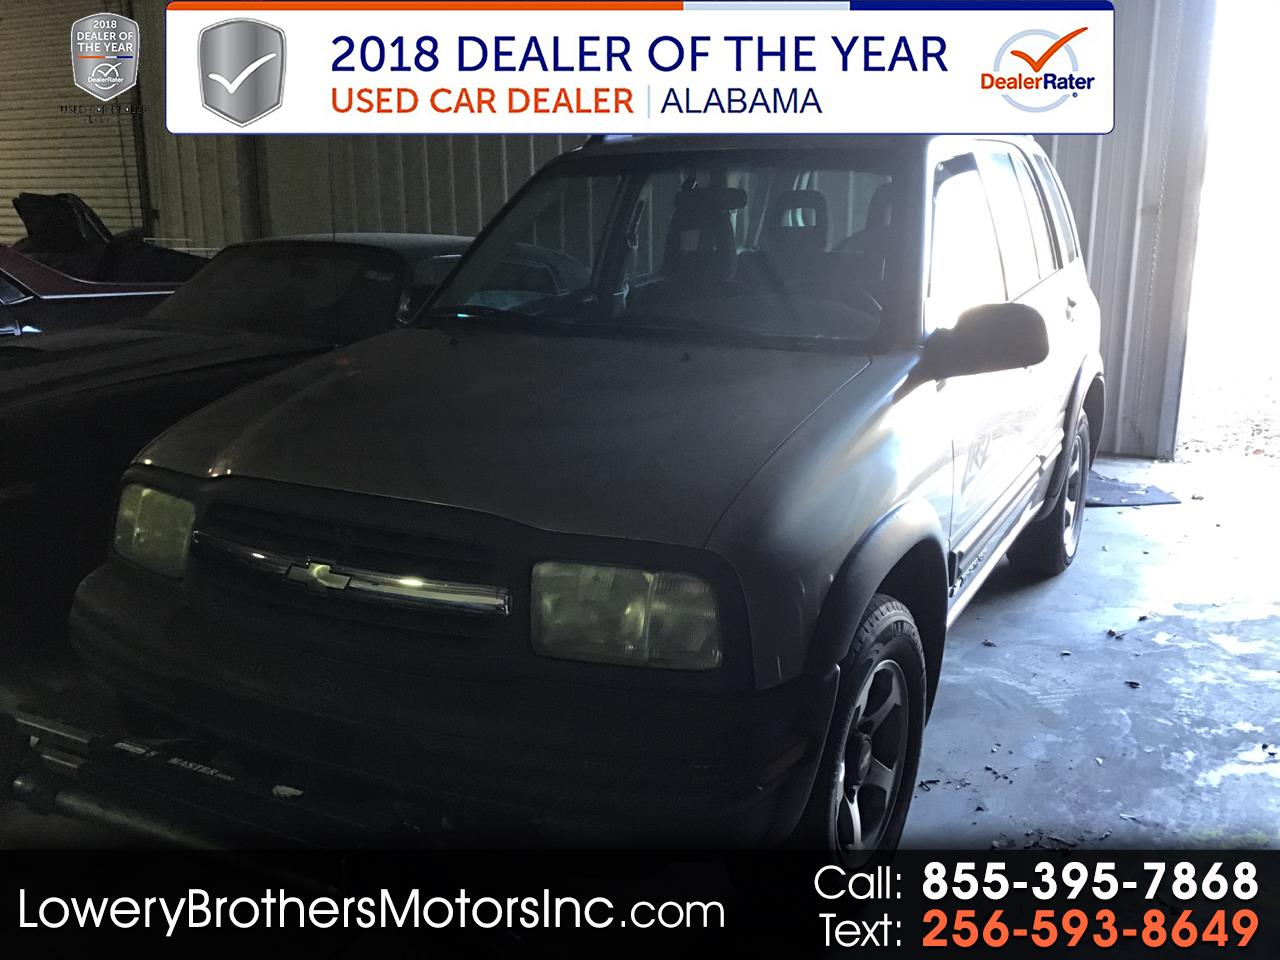 Chevrolet Tracker 4dr Hardtop 4WD ZR2 2002